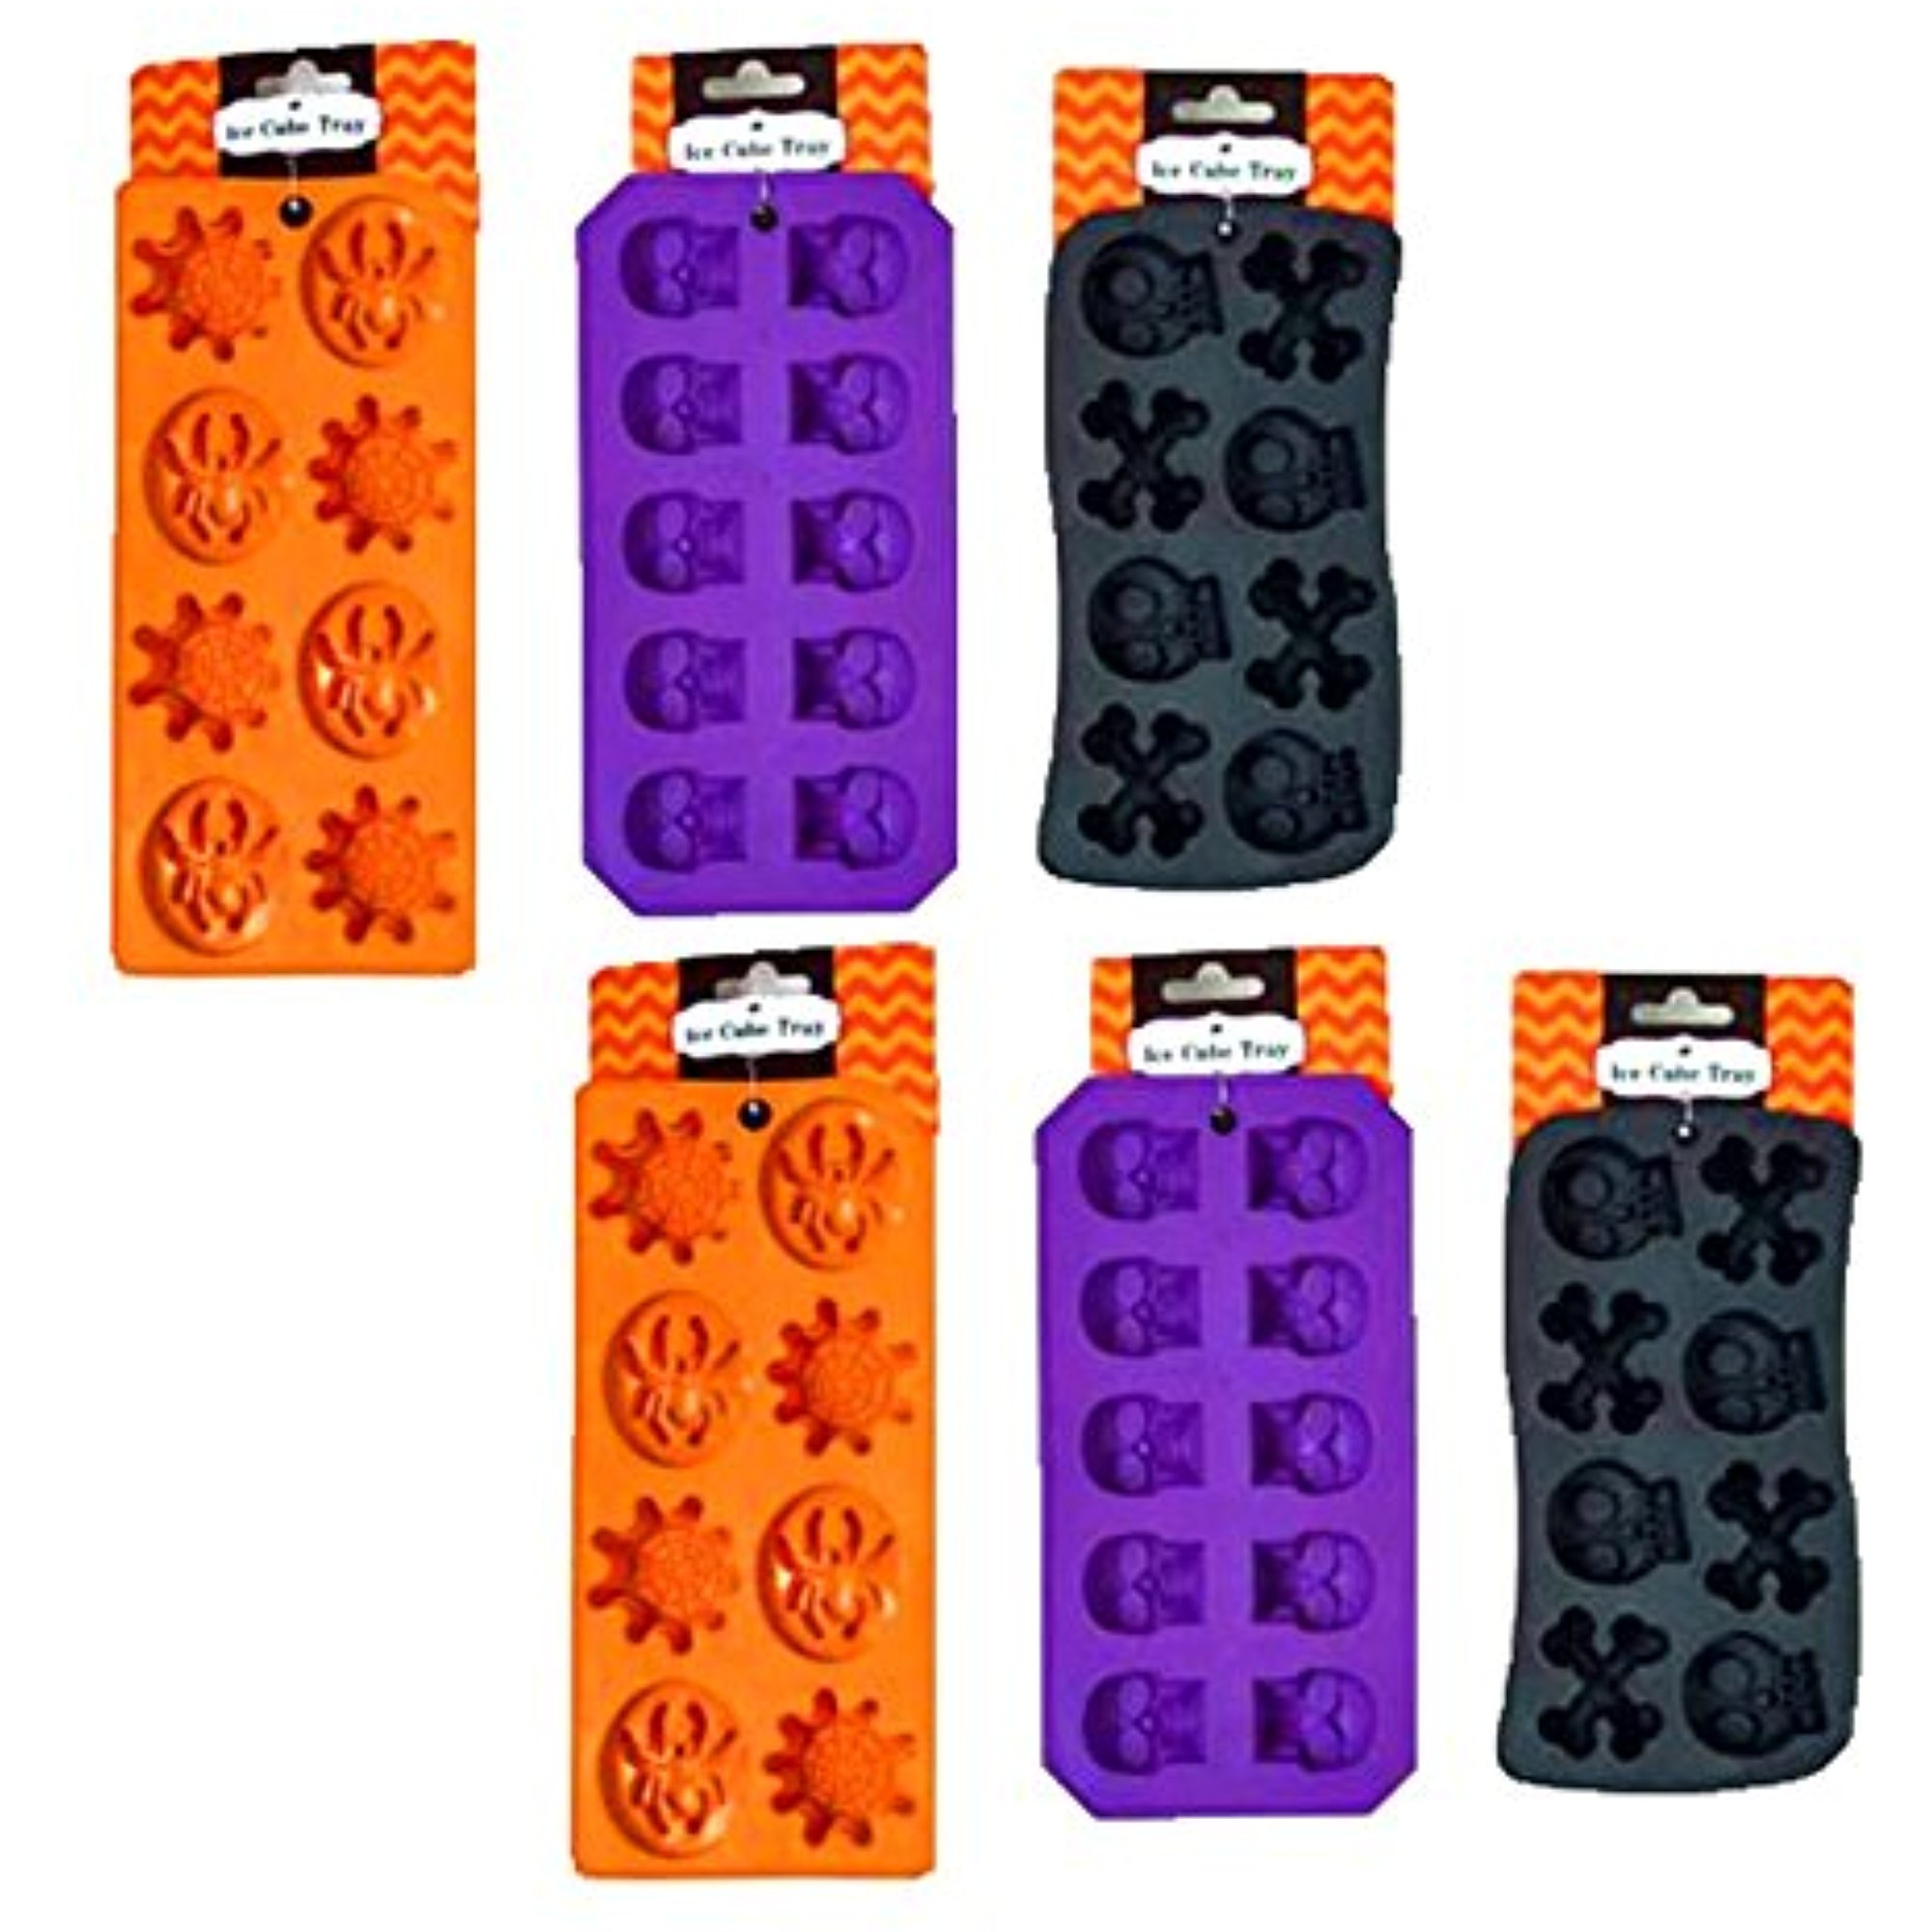 Set of 6 Spooky Halloween Shaped Ice Cube Tray / Food Molds - (2) skull and bones,(2) spider and webs,(2) skulls (6)